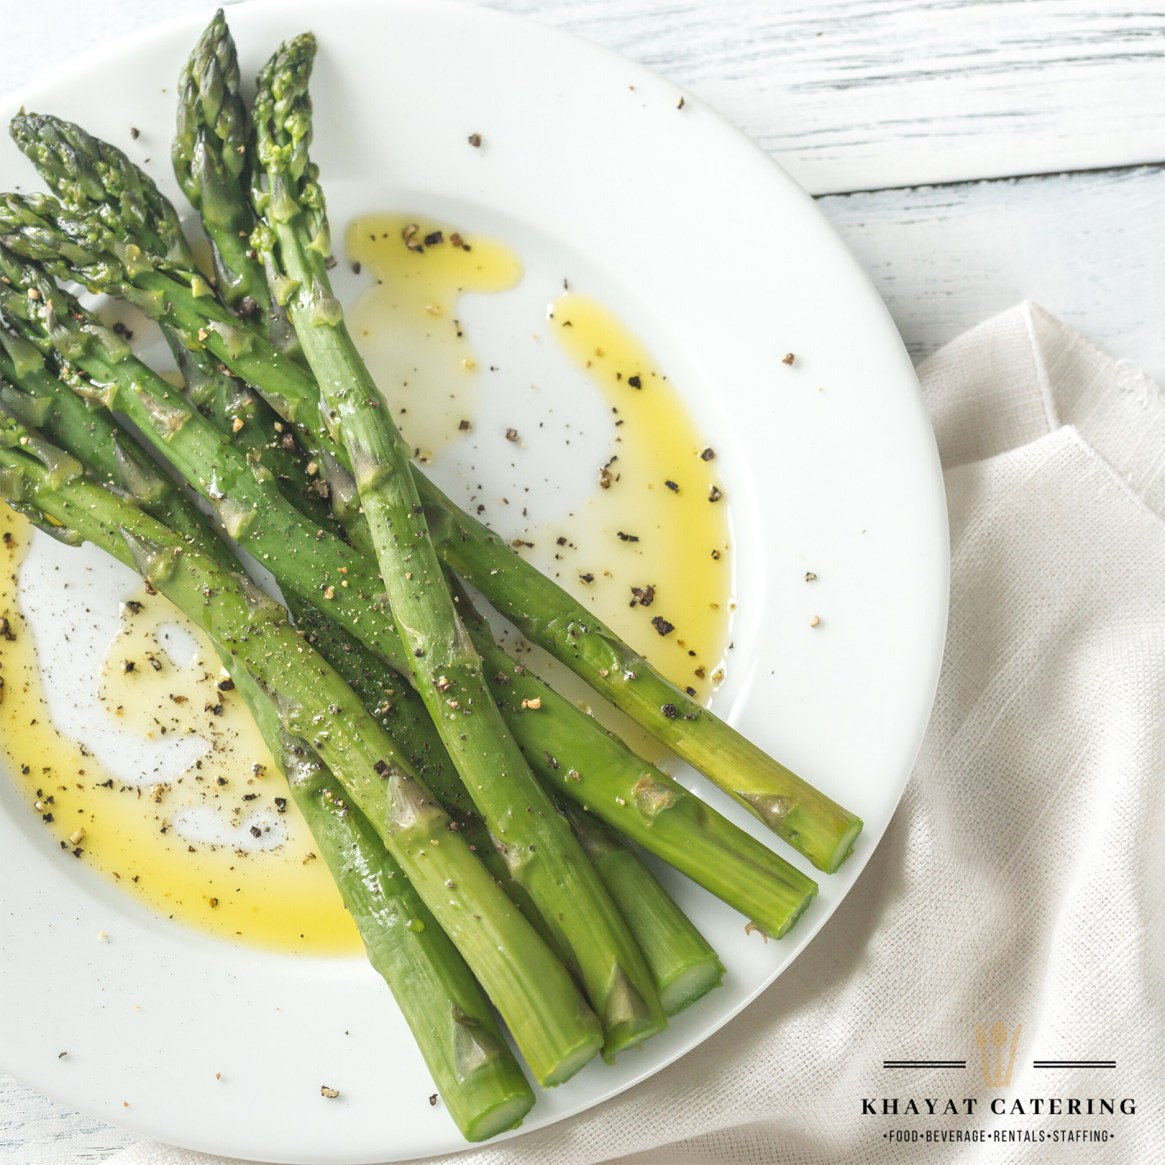 Khayat Catering Grilled Asparagus